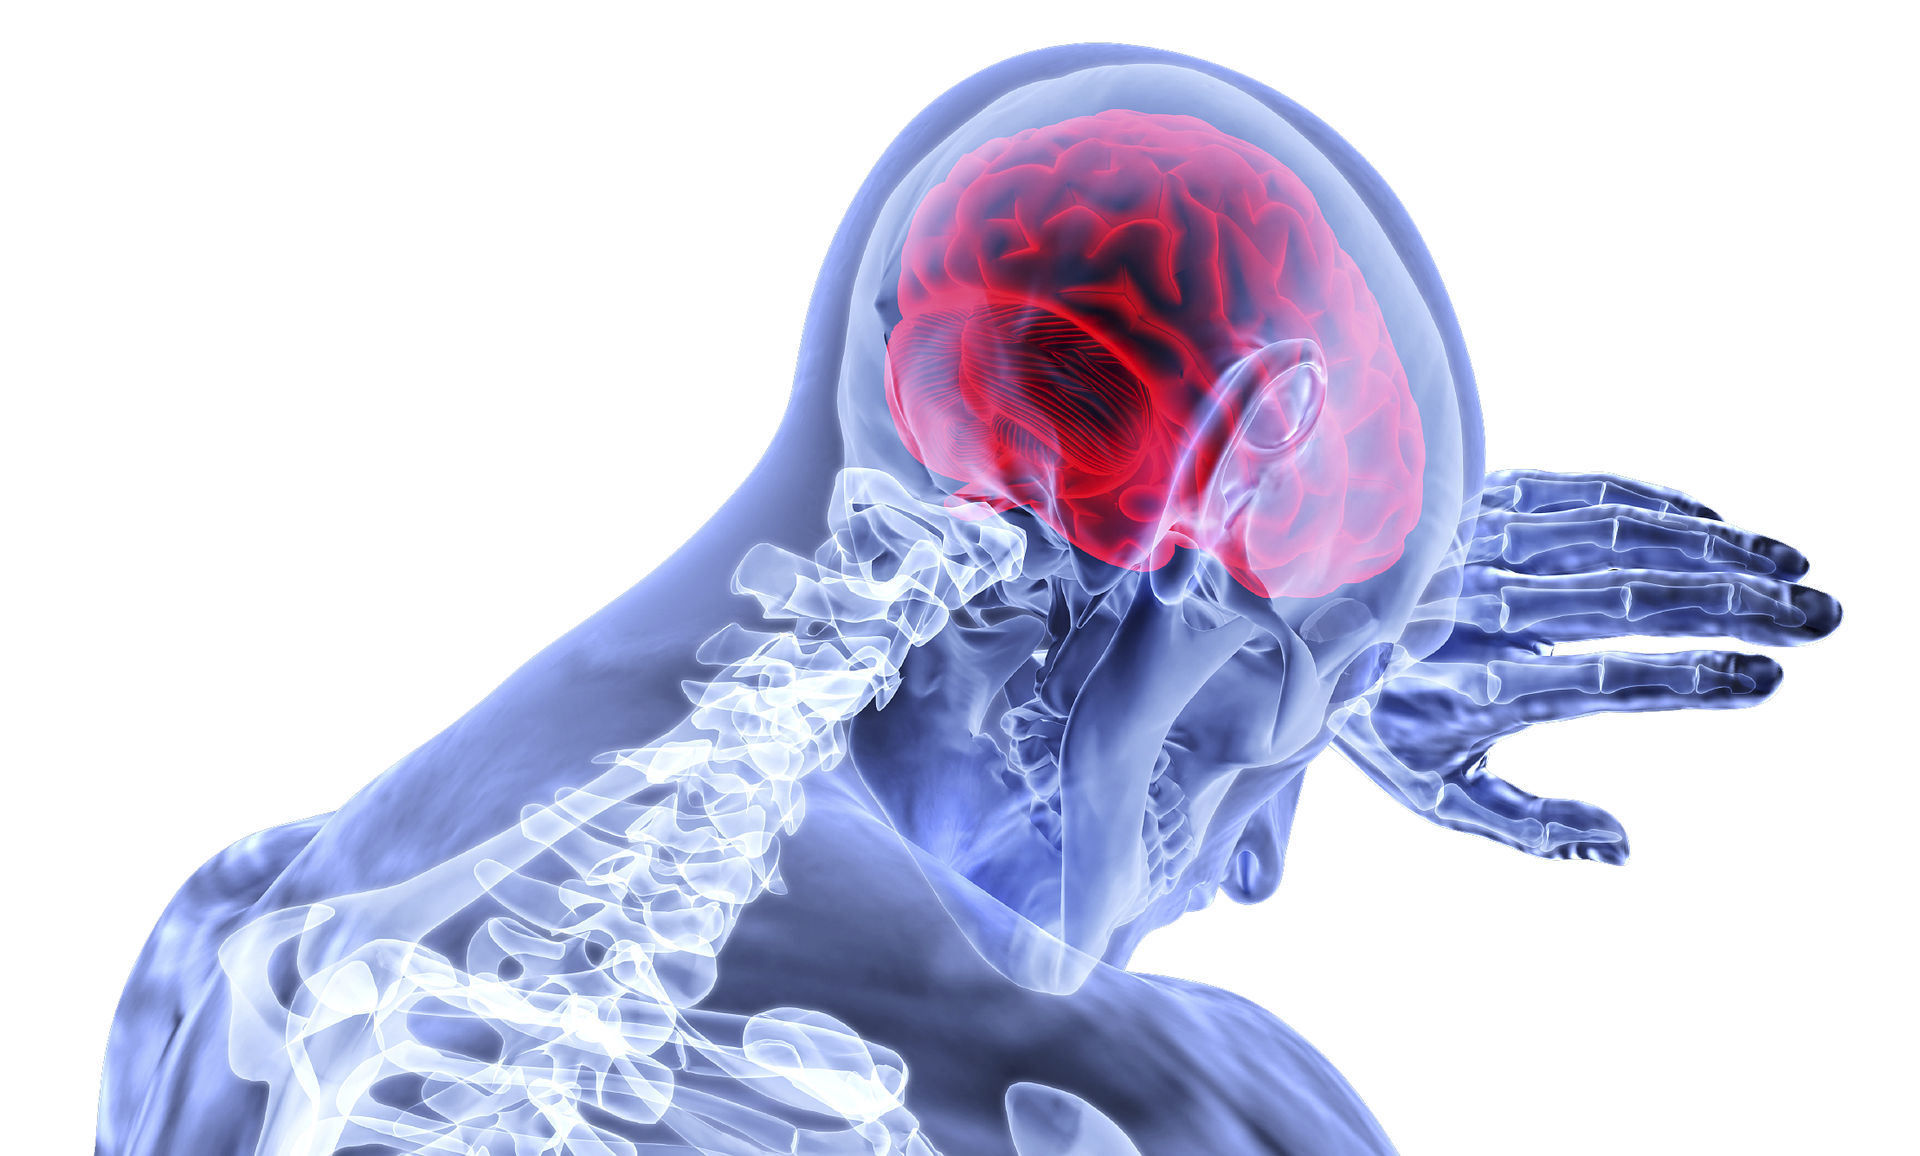 Stimulate, Image and Explore – What Does Pain Look Like in the Brain?